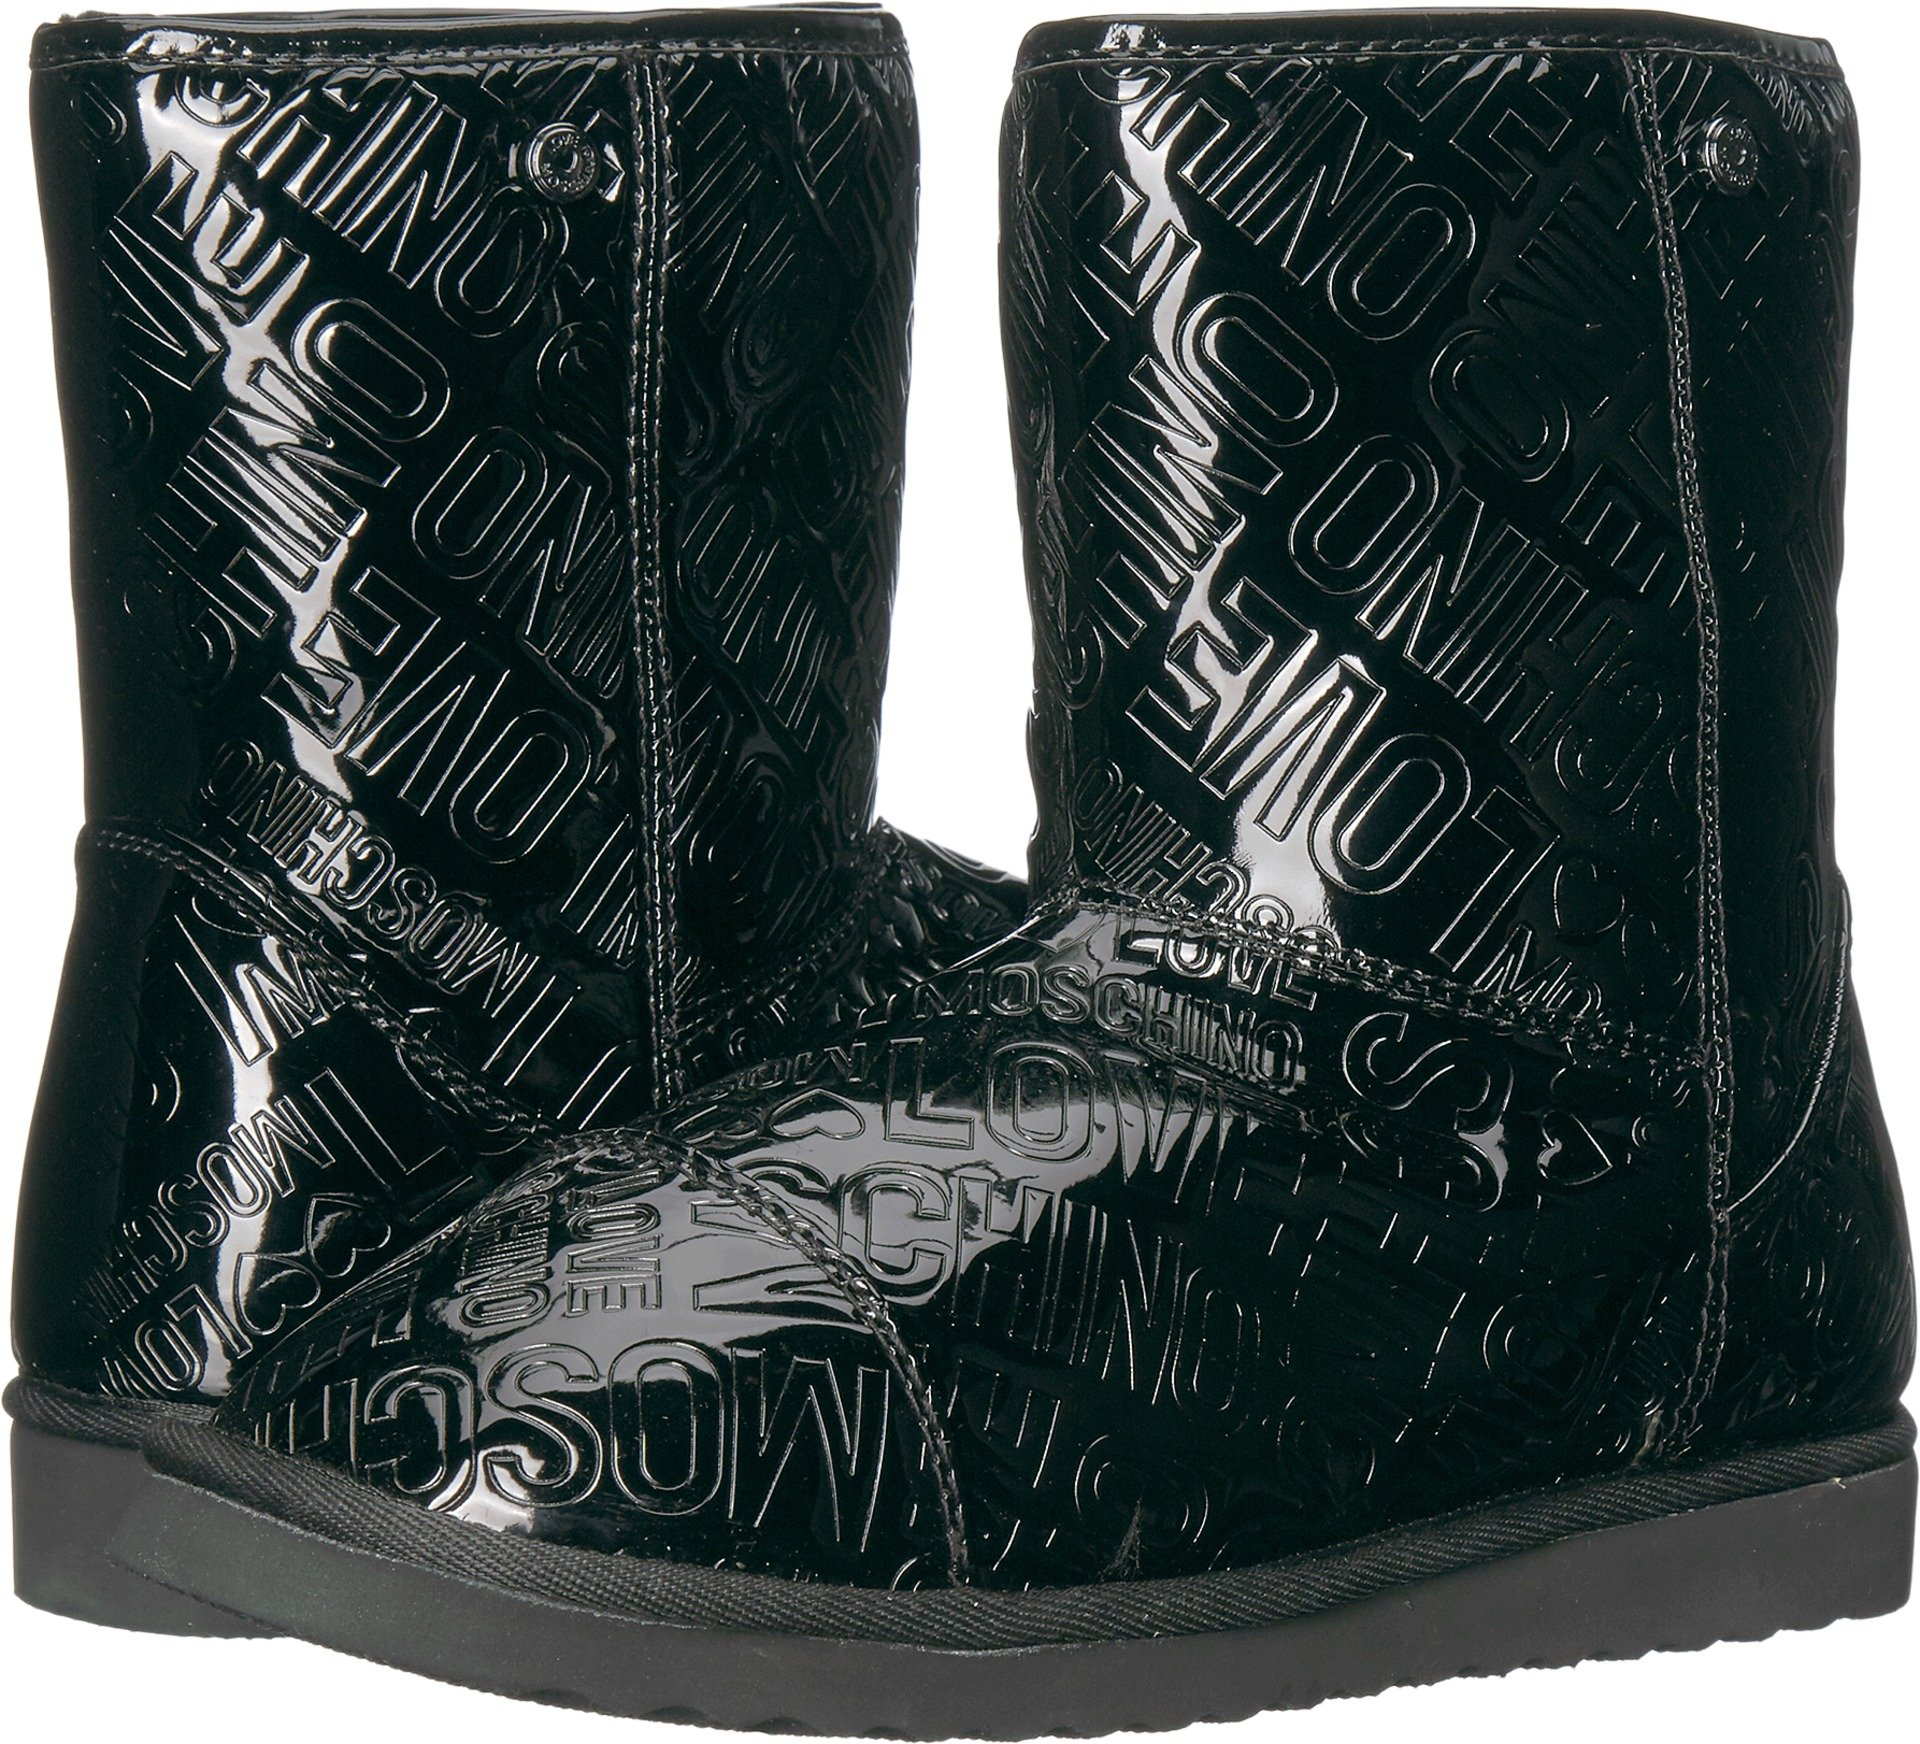 Love Moschino Women's Ankle Boots Black 38 M EU